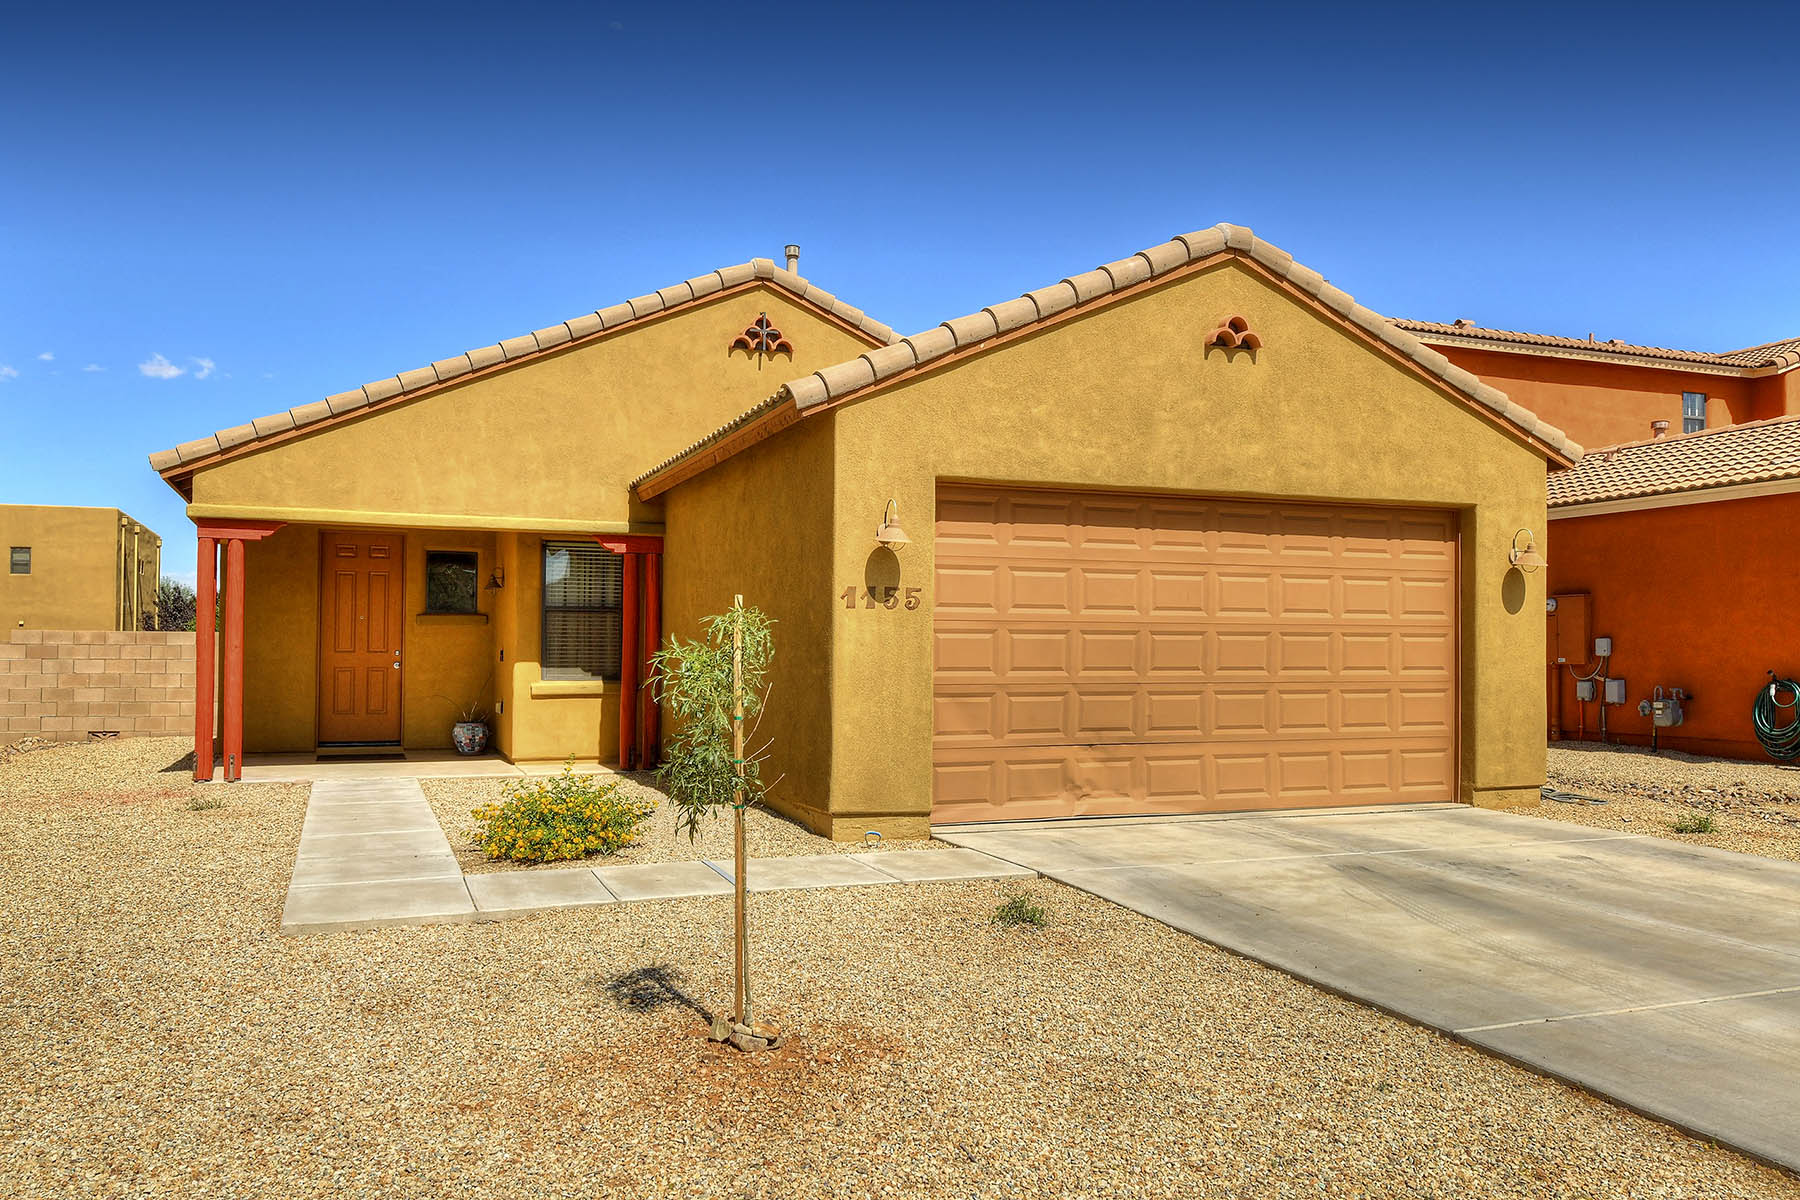 Single Family Homes for Sale at Charming, Impeccably Maintained Home 1155 Matsumoto Street Sierra Vista, Arizona 85635 United States